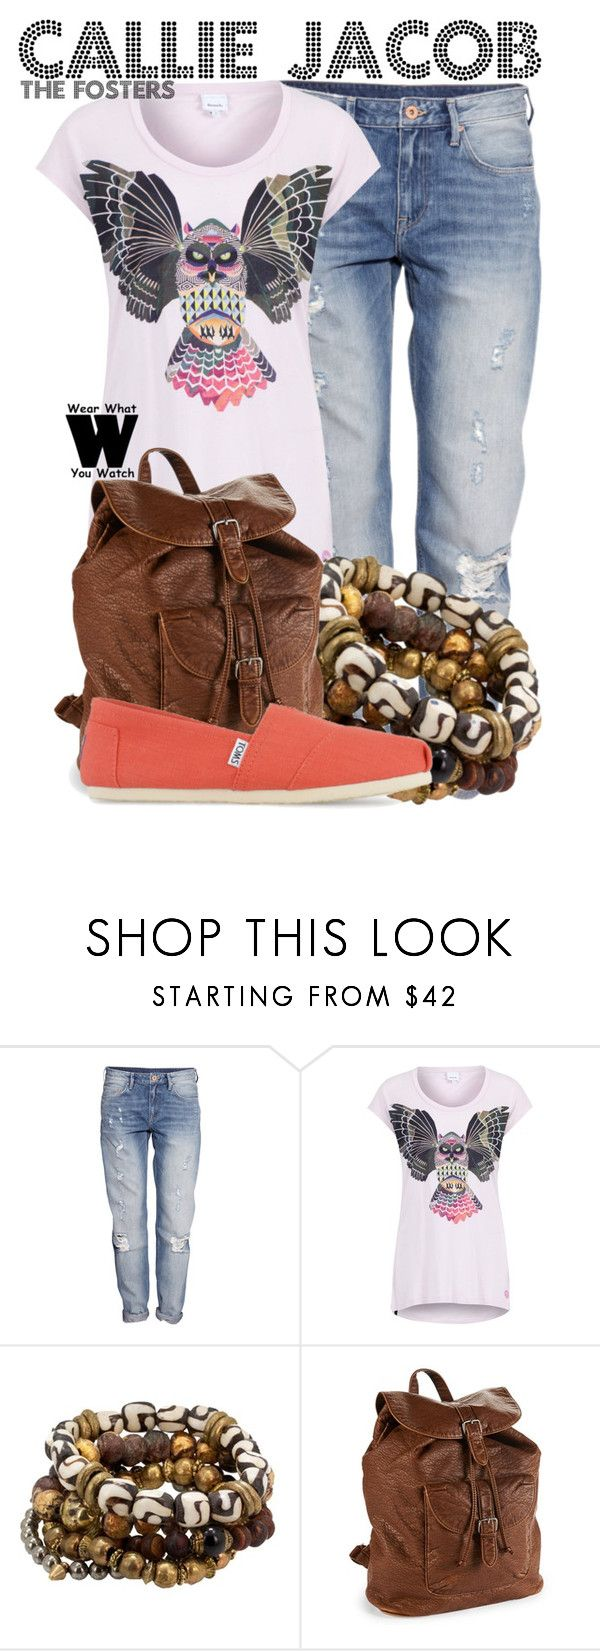 """The Fosters"" by wearwhatyouwatch ❤ liked on Polyvore featuring H&M, Bench, Lacey Ryan, Aéropostale, TOMS, television and wearwhatyouwatch"